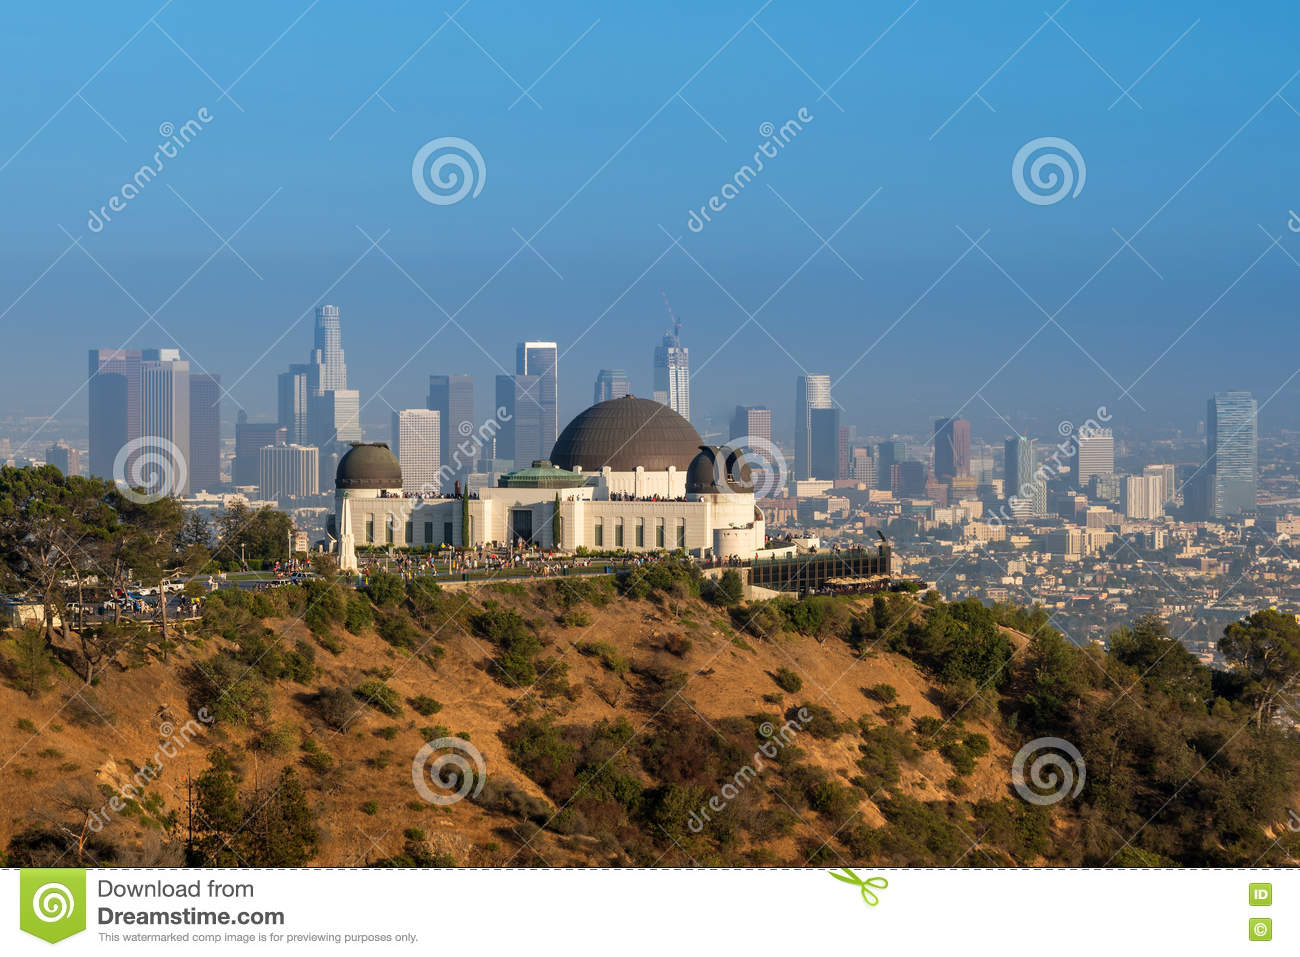 Griffith Observatory and downtown Los Angeles in CA